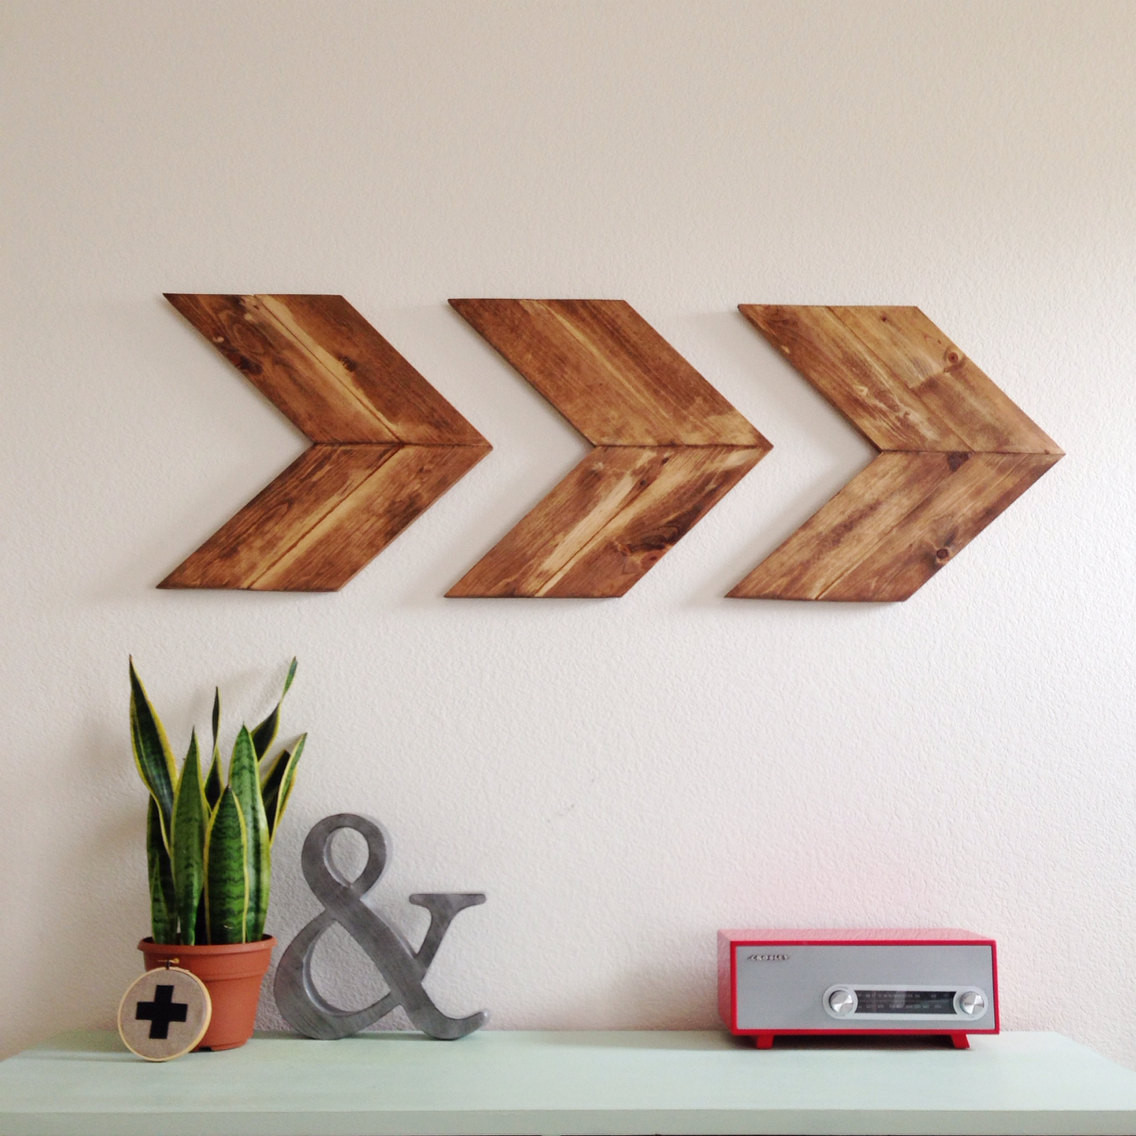 Best ideas about Wood Wall Art . Save or Pin 15 Striking Ways to Decorate with Arrows Now.